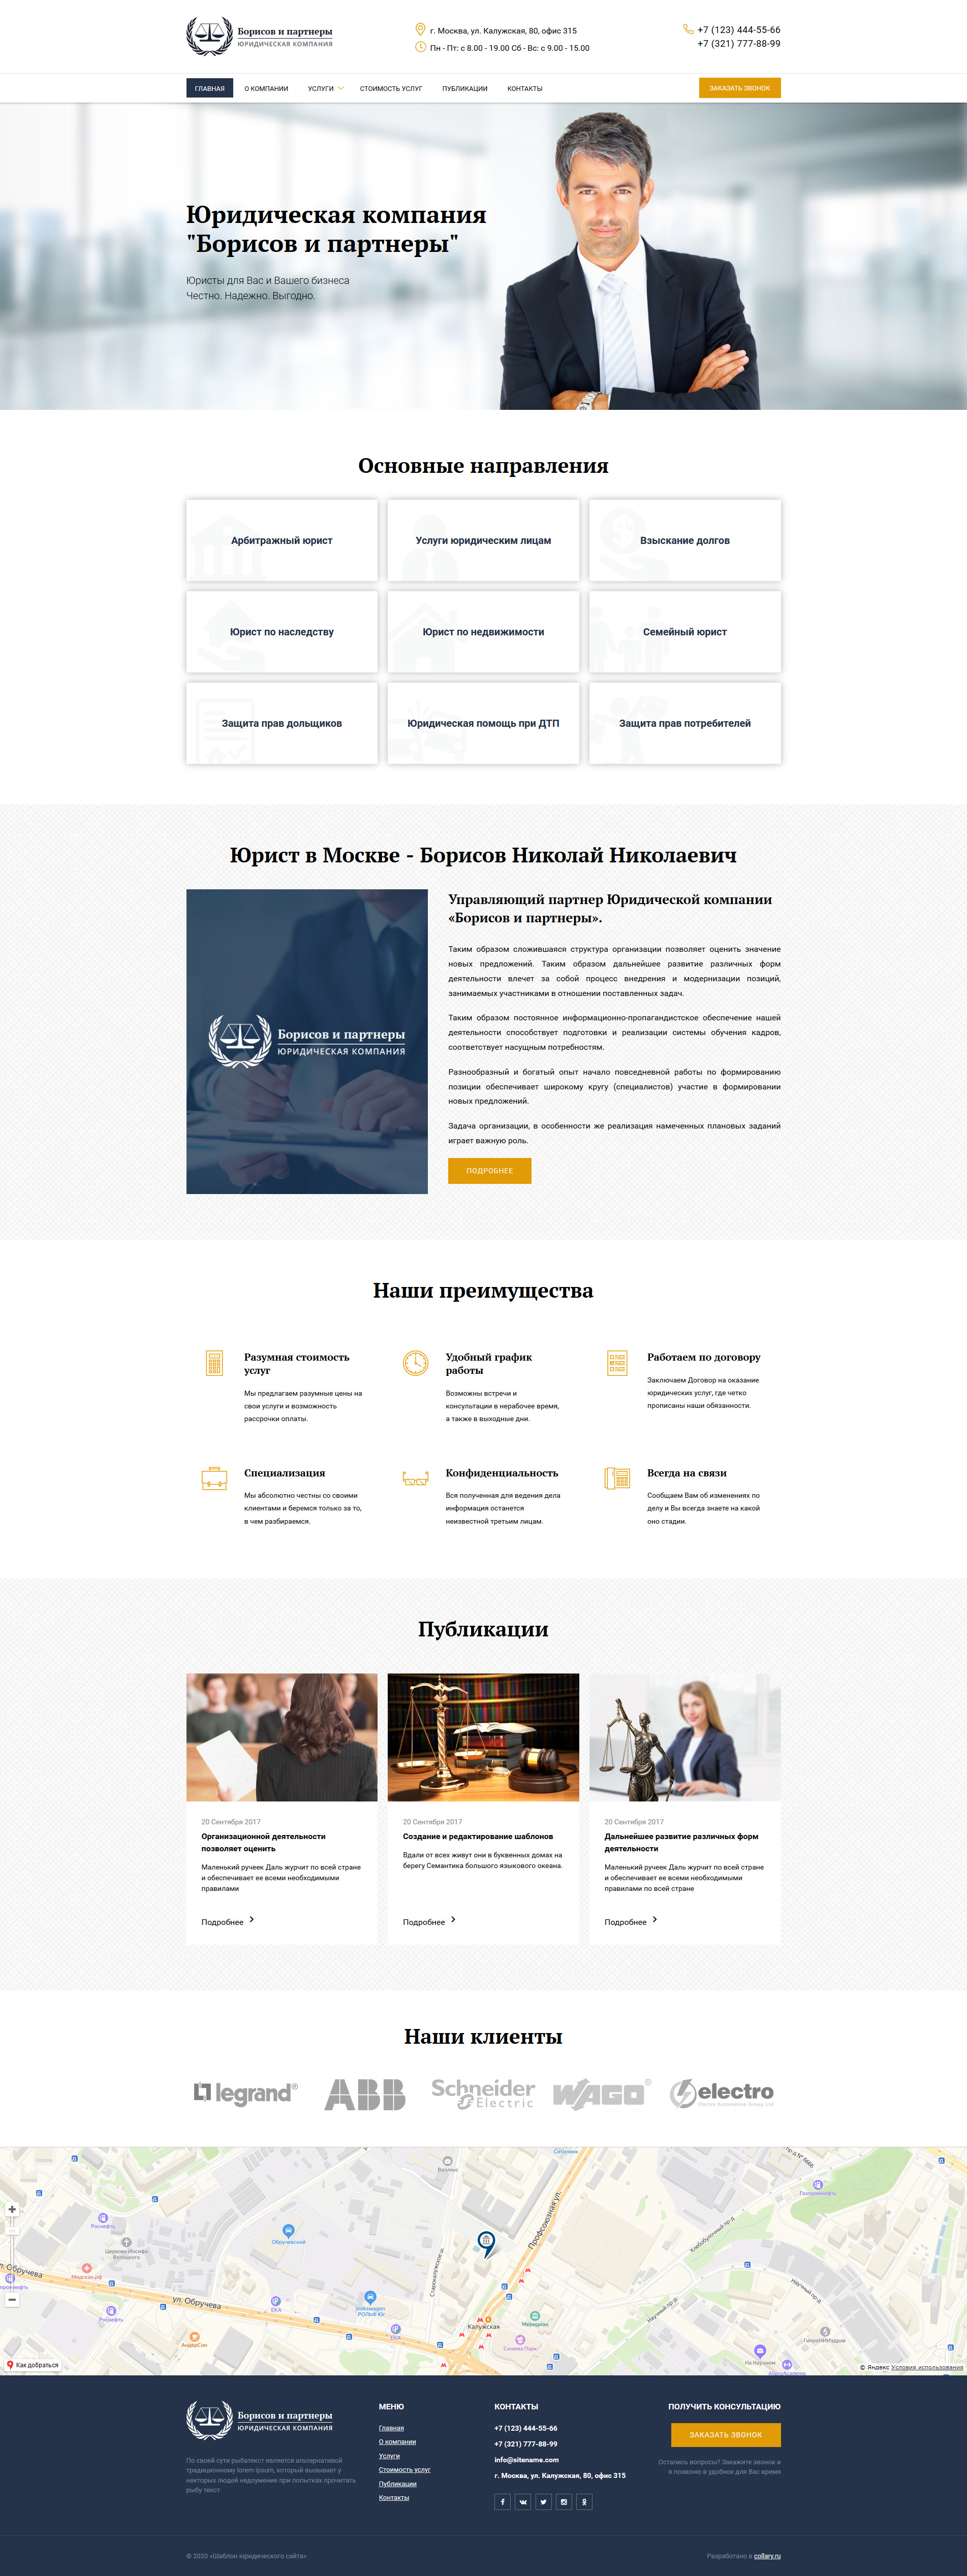 Legal, Business card website MODx Template